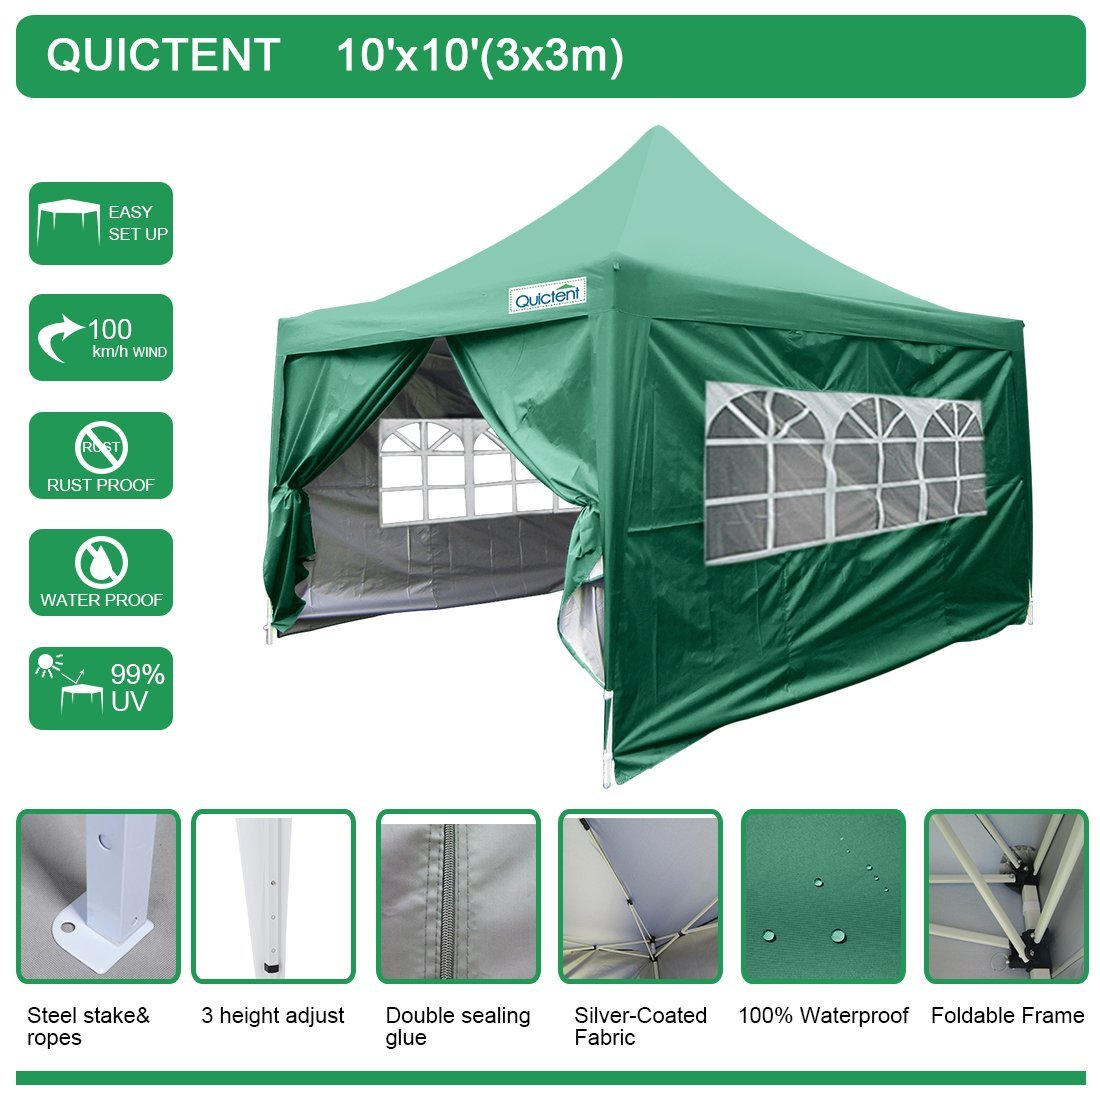 Quictent Silvox 10u0027 x 10u0027 EZ Pop Up Canopy Portable Waterproof Gazebo Pyramid Roof  sc 1 st  Walmart : portable pop up canopy - memphite.com